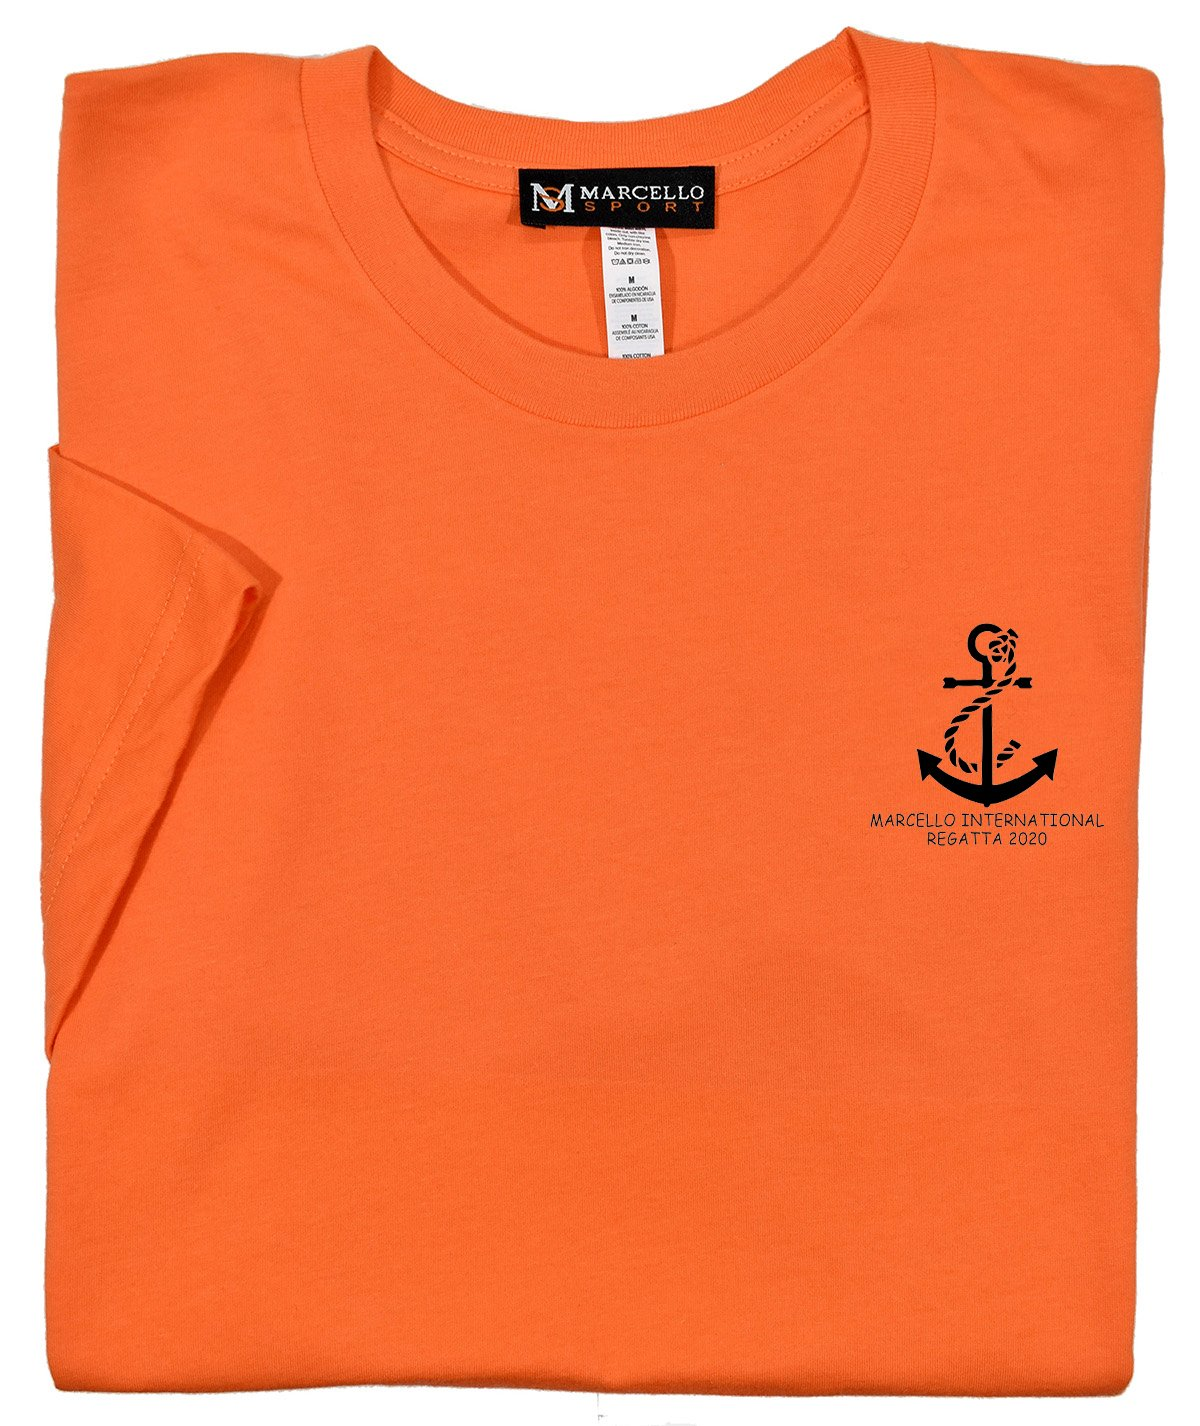 T006 Marcello Regatta Tee - Marcello Sport